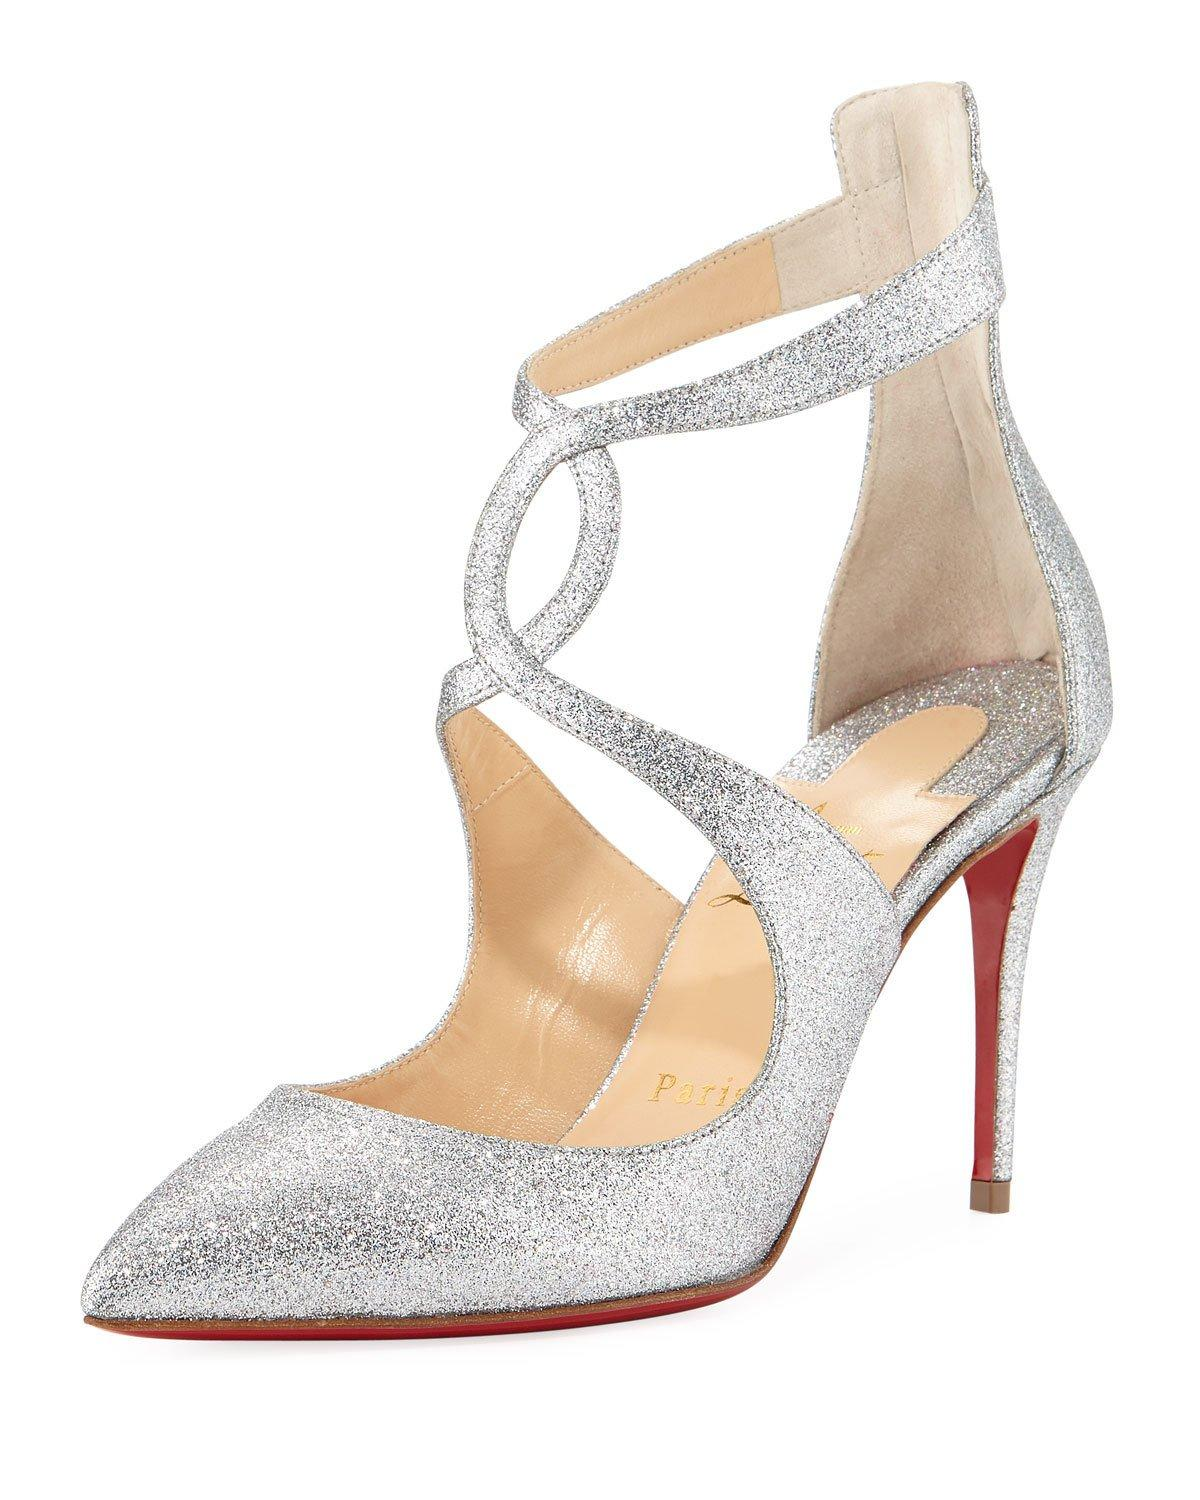 59d155b10b7 Christian Louboutin Rosas 85Mm Red Sole Pumps In Silver